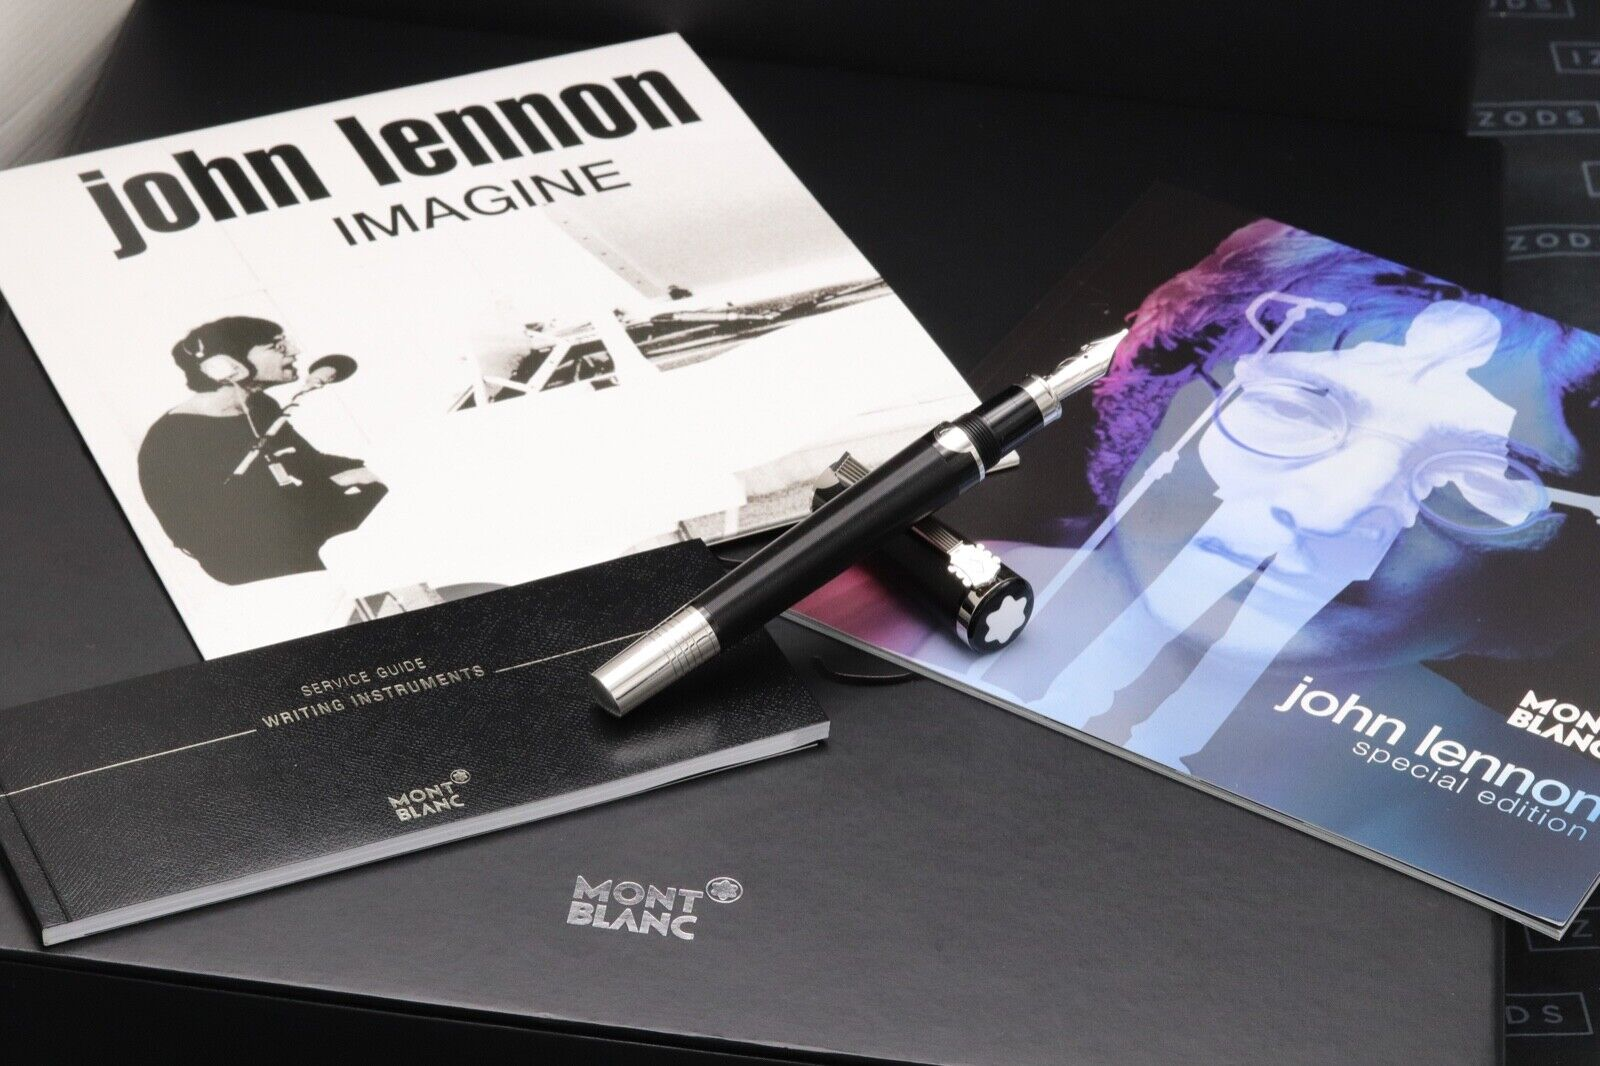 Montblanc Donation Series John Lennon Special Edition Fountain Pen